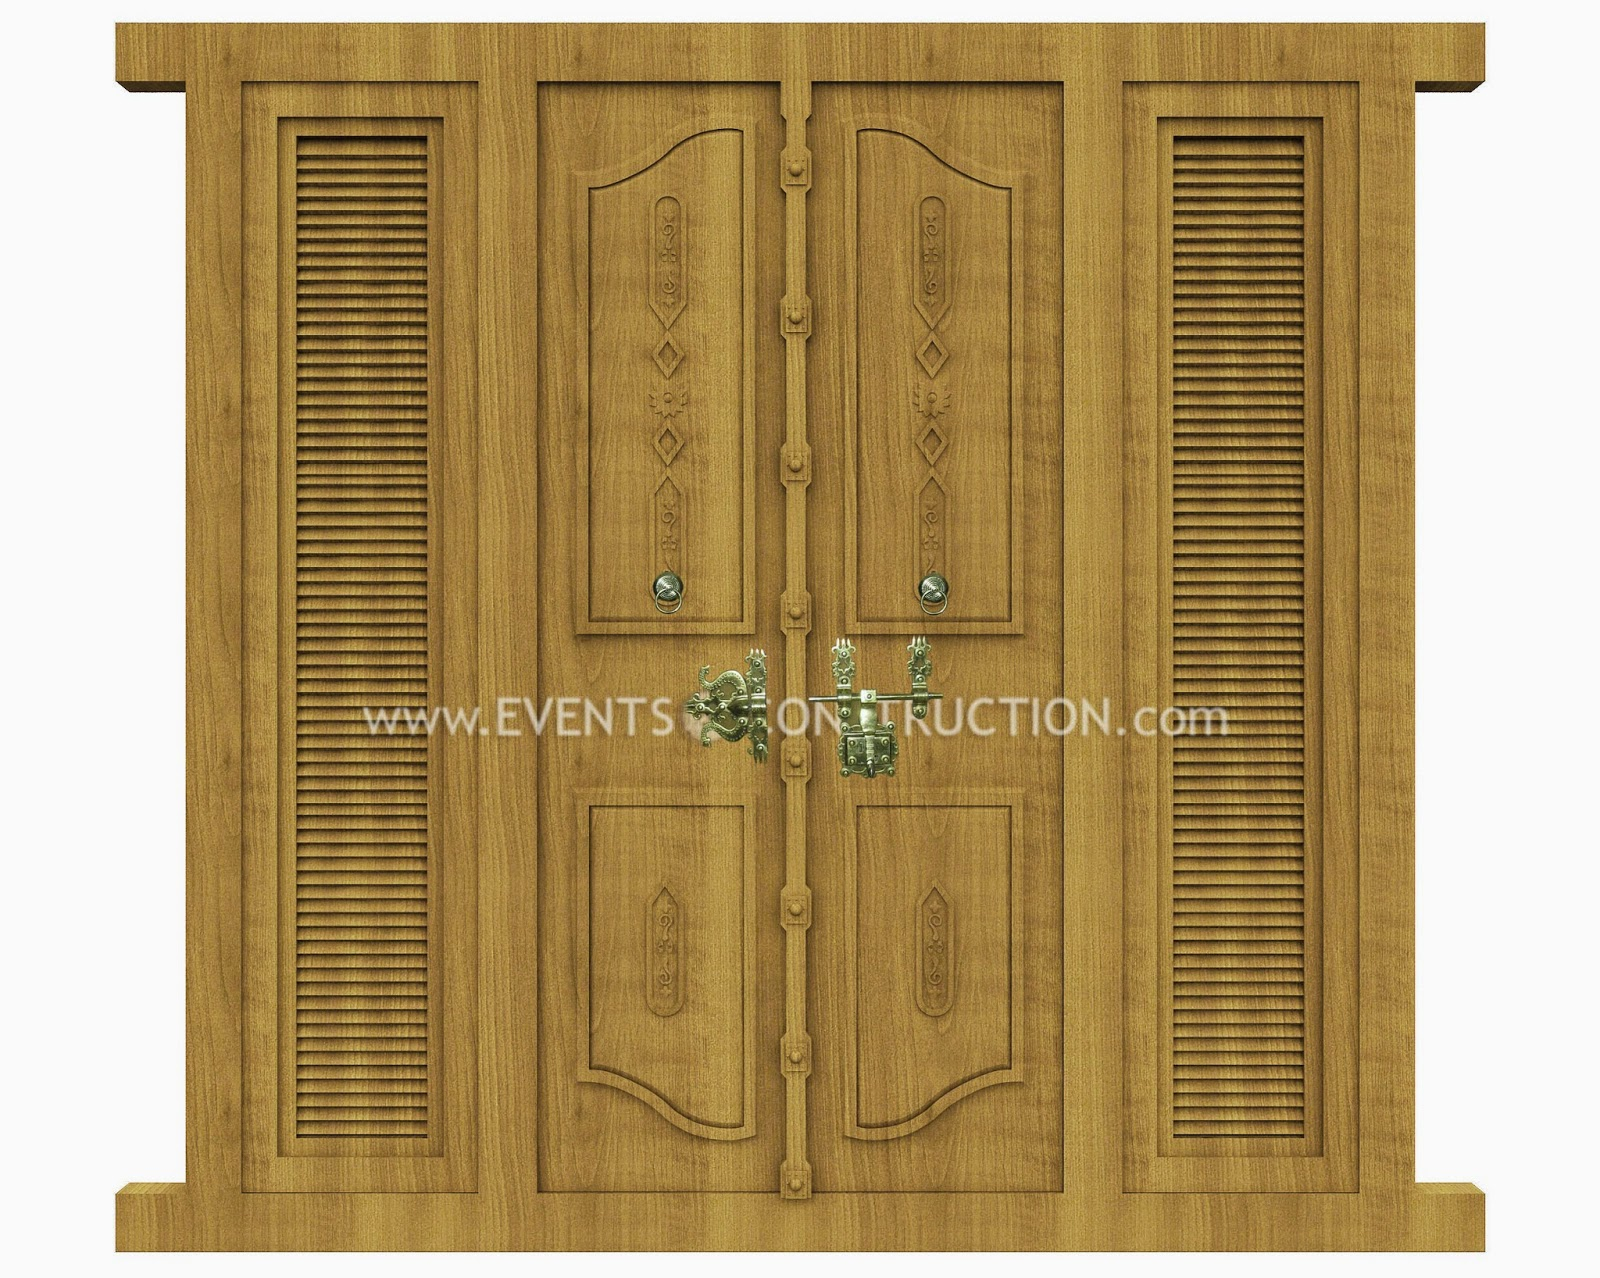 Evens construction pvt ltd wooden main door design for Main door designs 2014